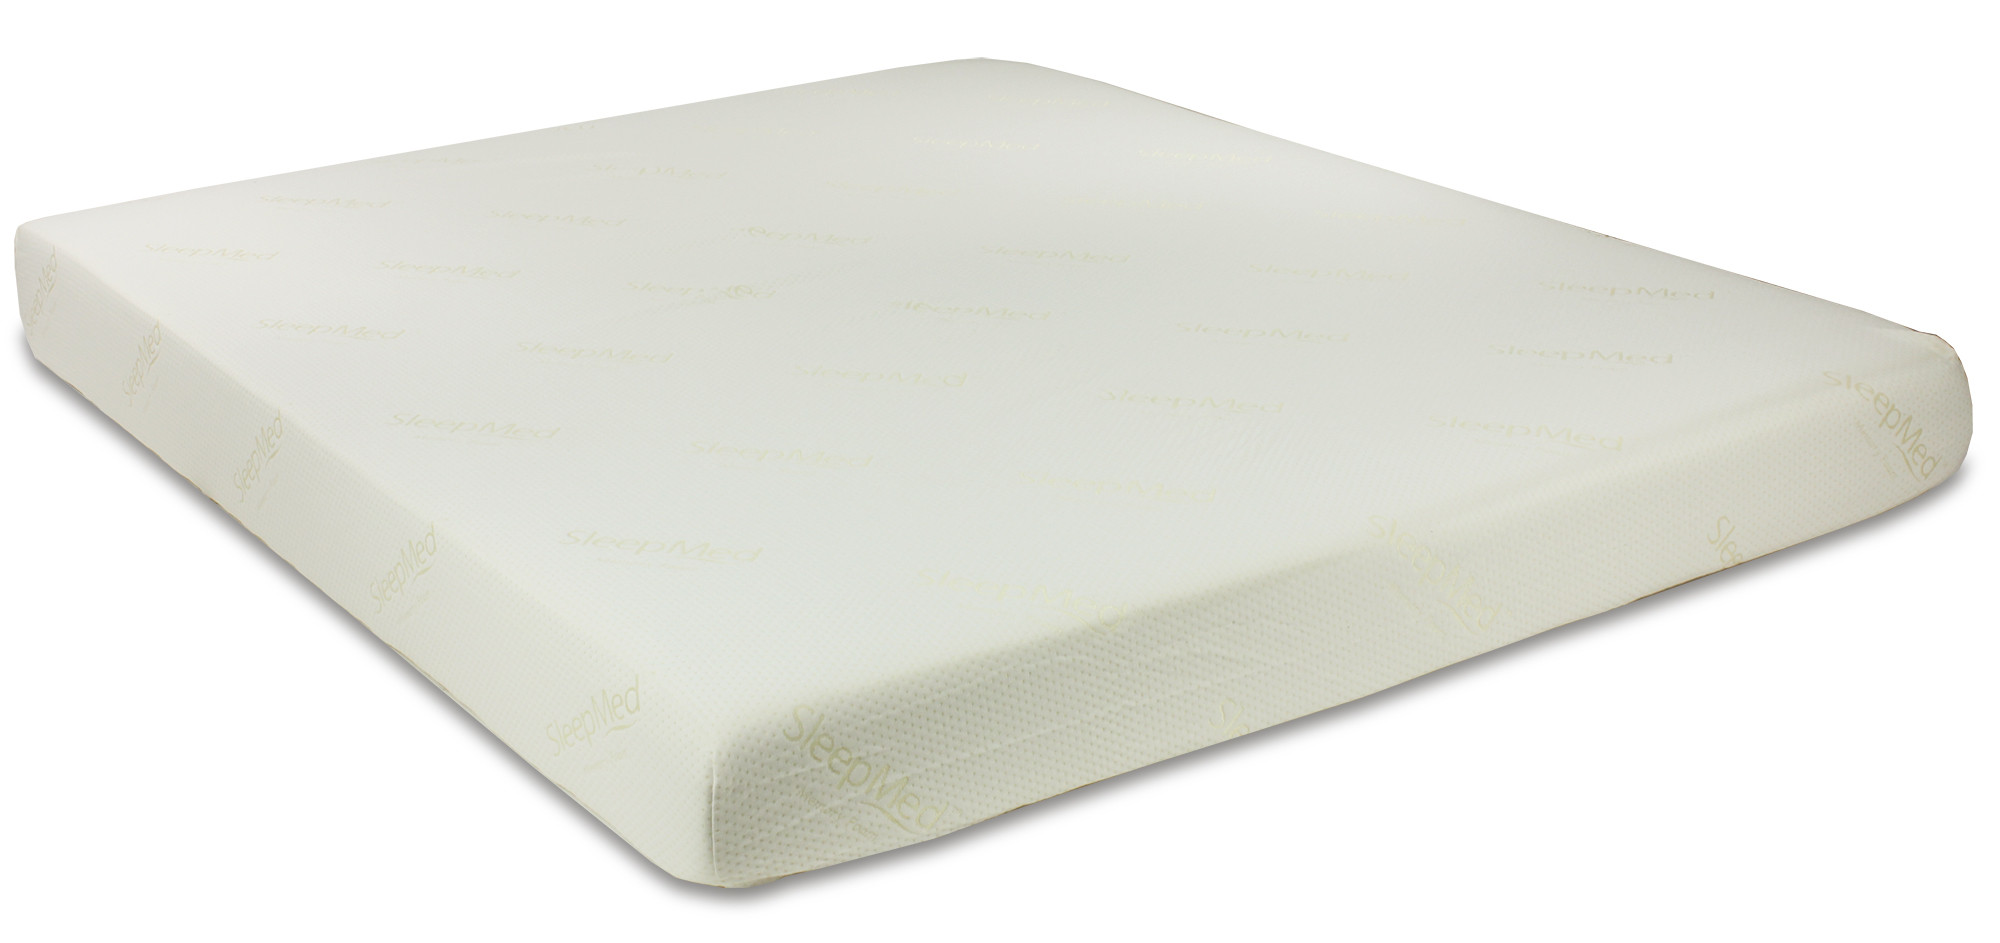 Sleepmed Memory Foam Mattress Queen In 5 Inch Furniture Home D Cor Fortytwo